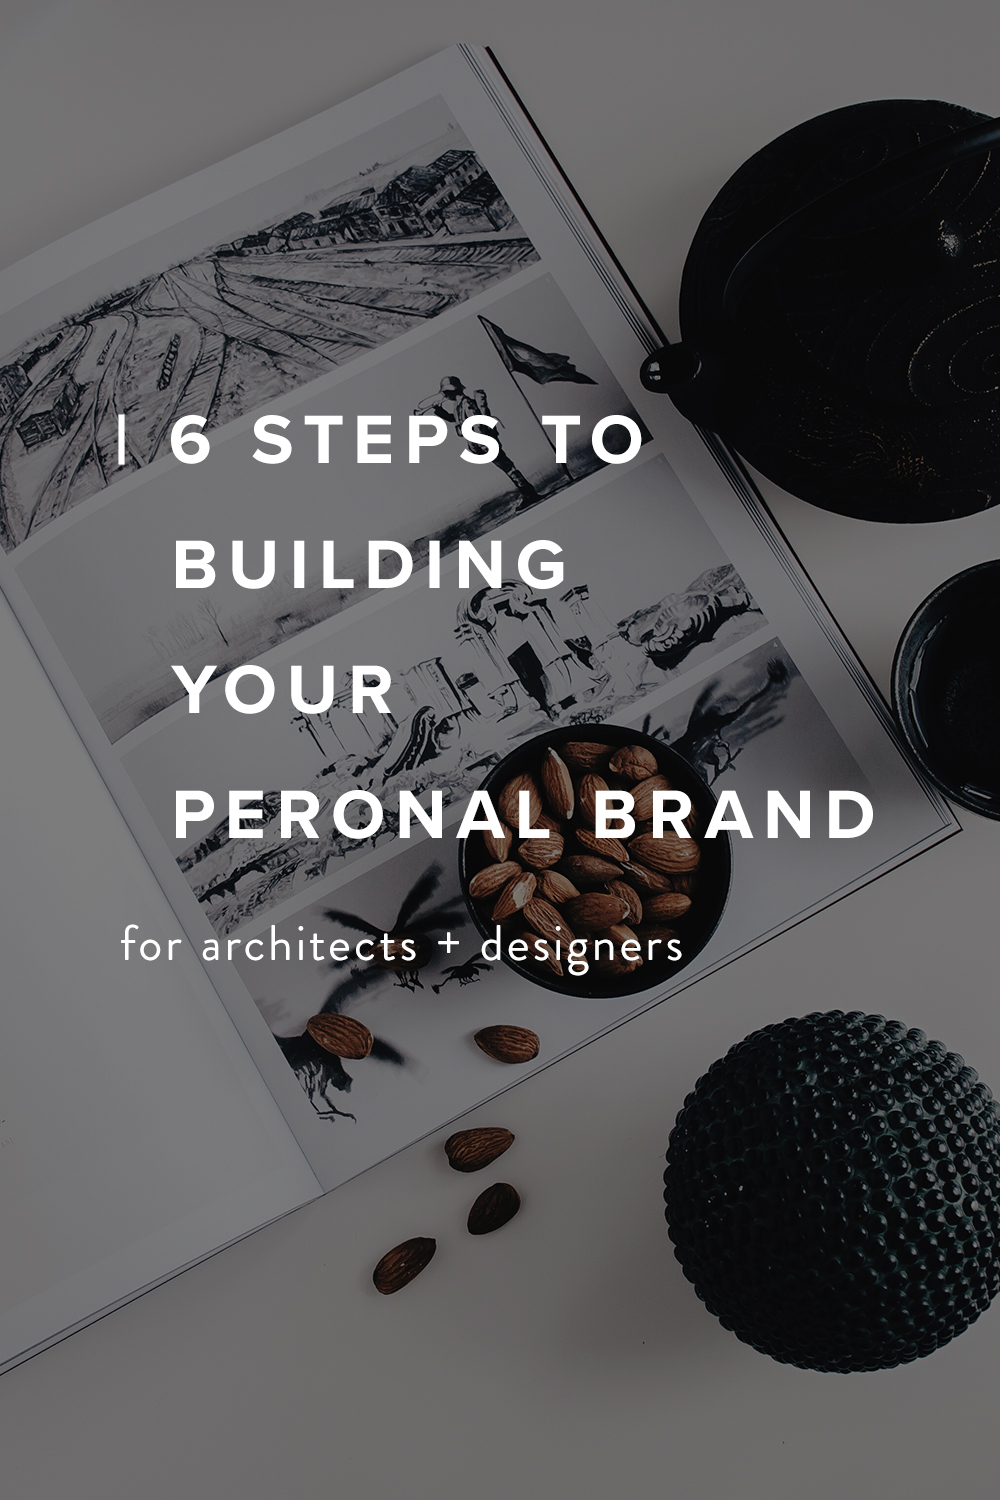 Let's talk branding. Whenever someone sends me their portfolio and asks for feedbacks, I always tell them to build a personal brand first. Many intern architects overlook this, because we are architects not graphic designers. We build buildings, not branding. Read more on the Millennial Architect blog. | joann lui